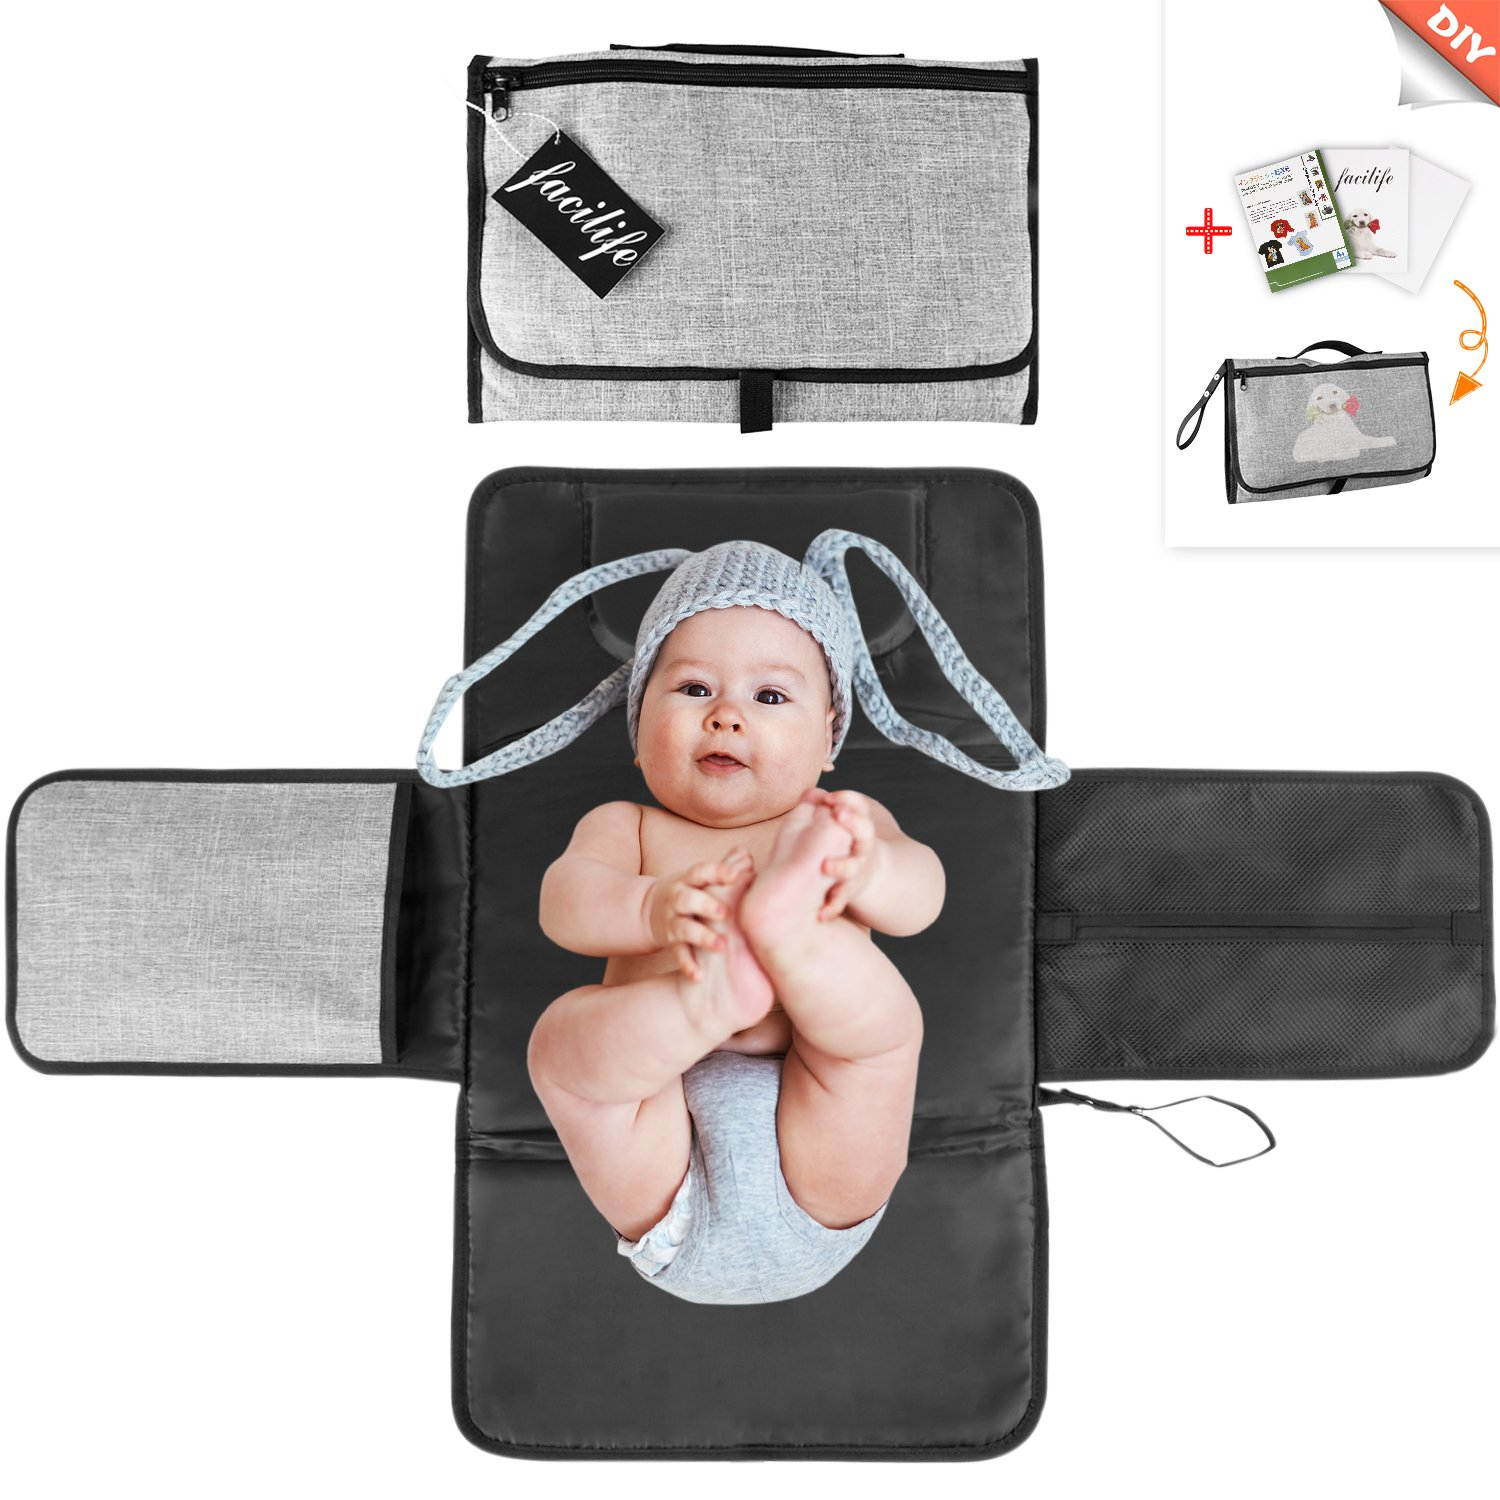 Portable Changing Pad Kit for Infant Baby with DIY Transfer Paper for Shower Gift Changing Mat with Head Cushion Lightweight Waterproof Foldable Travel Clutch Home Diaper Changing Station